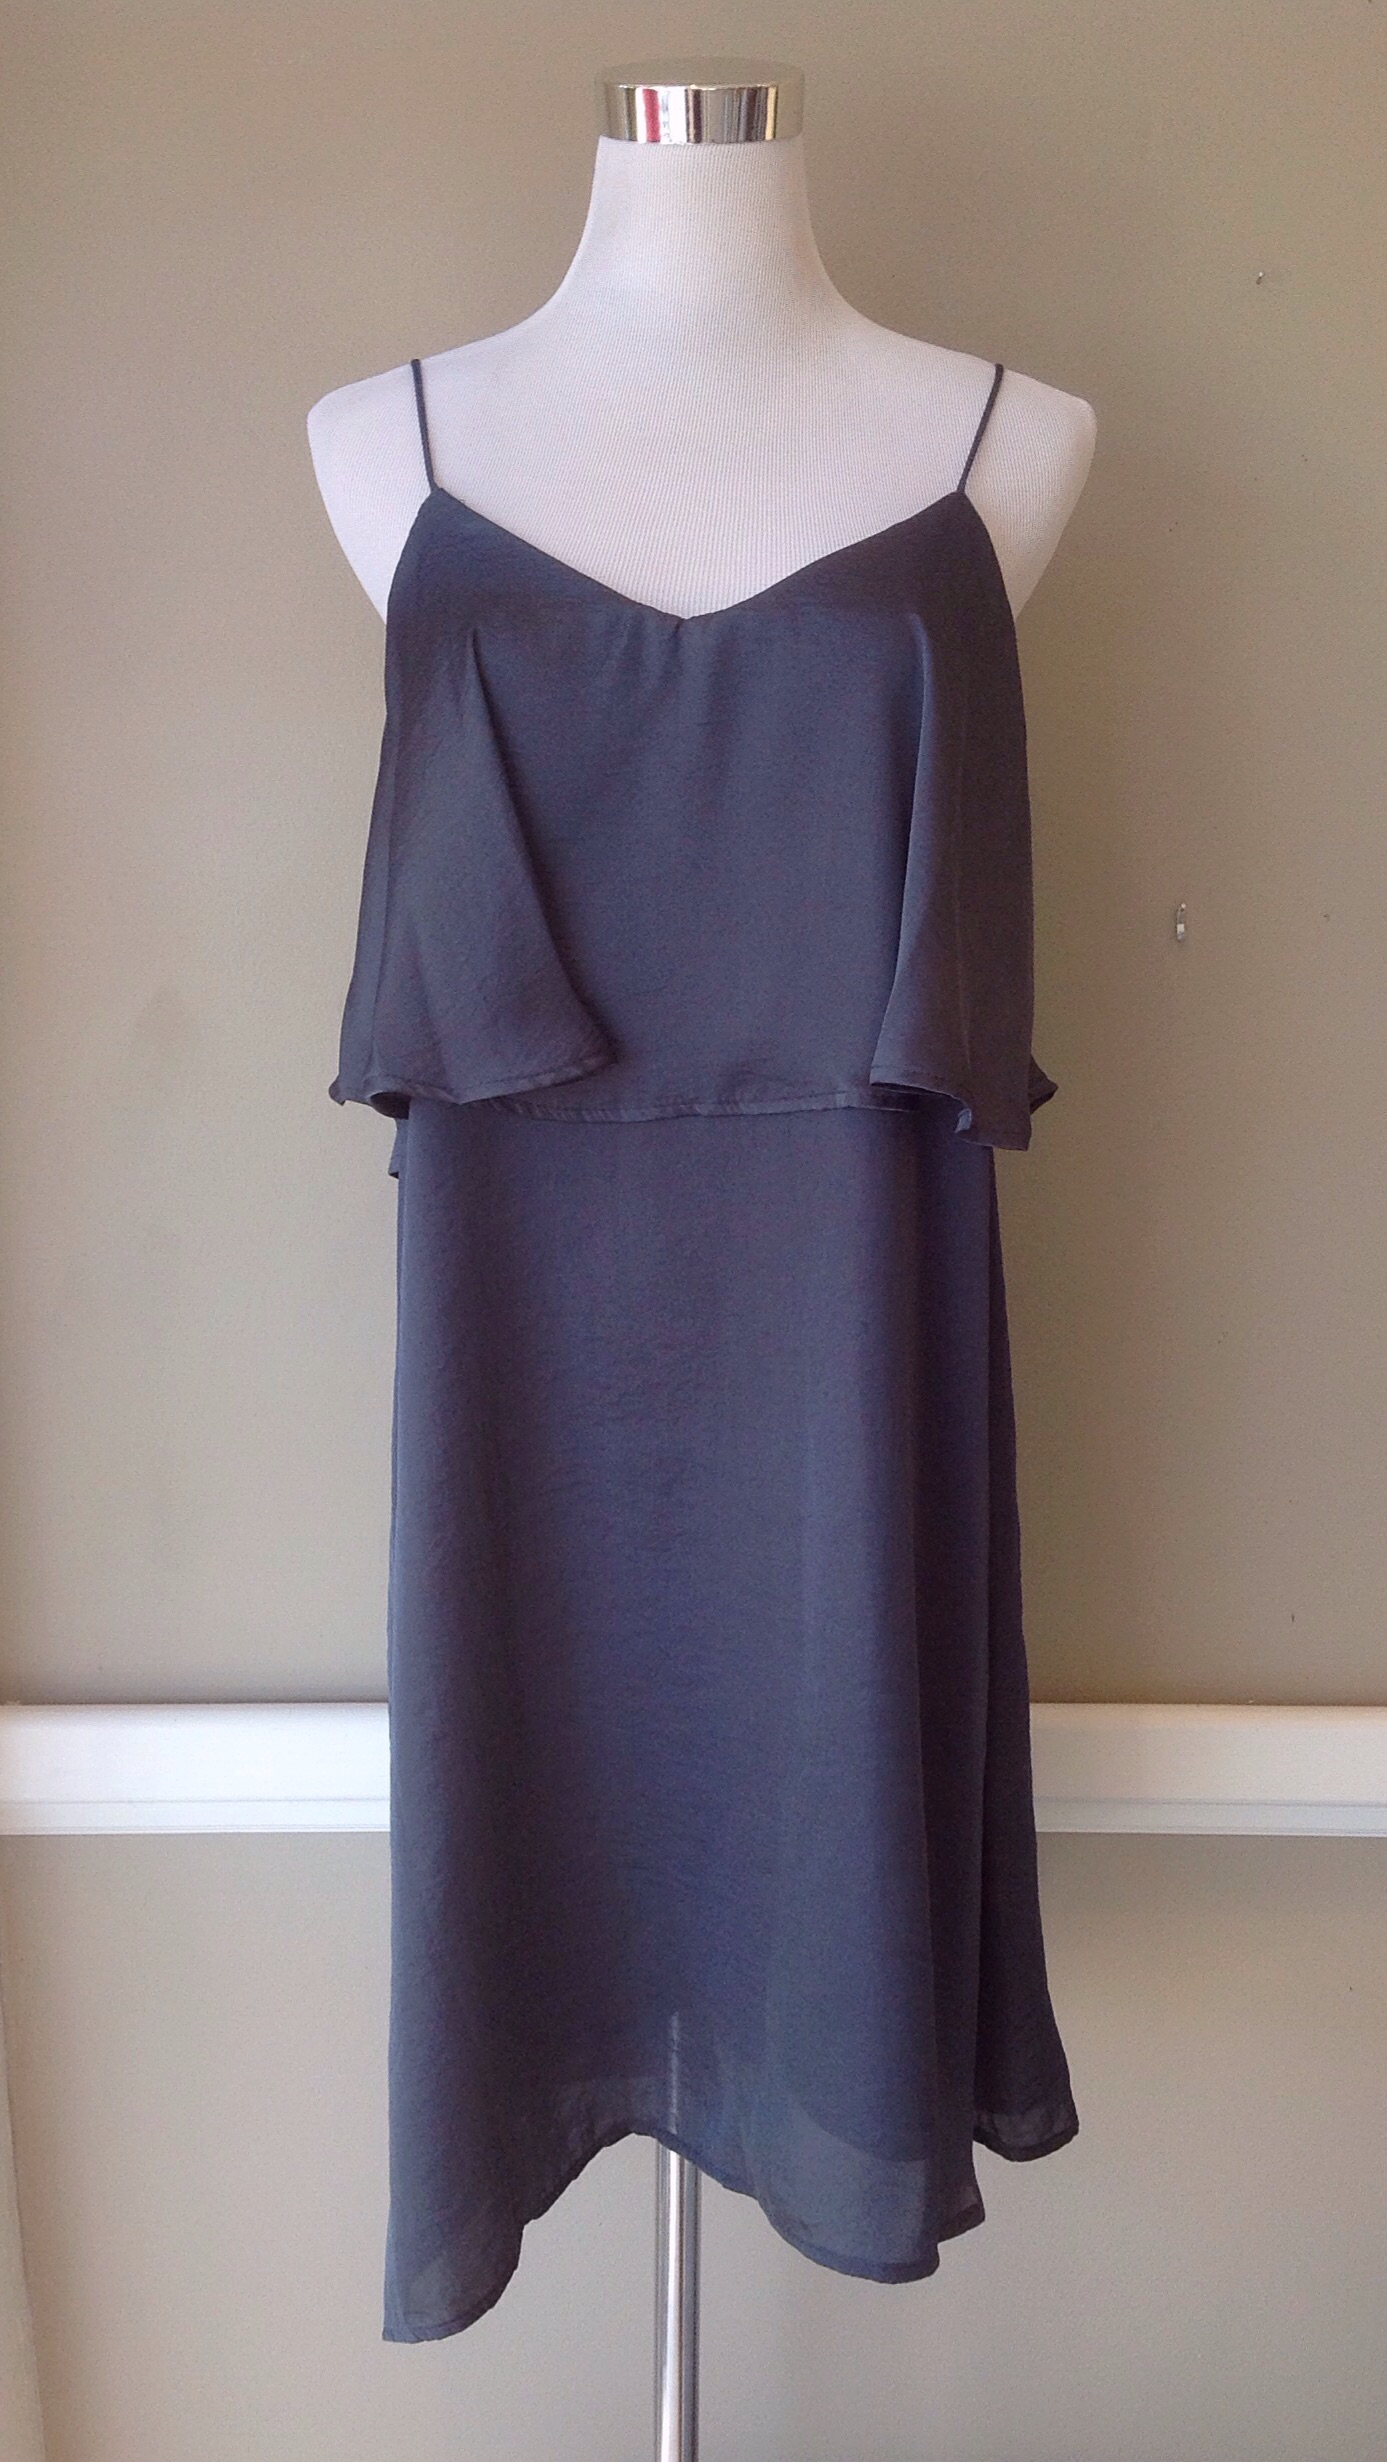 Charcoal party dress with tiered bodice, $35